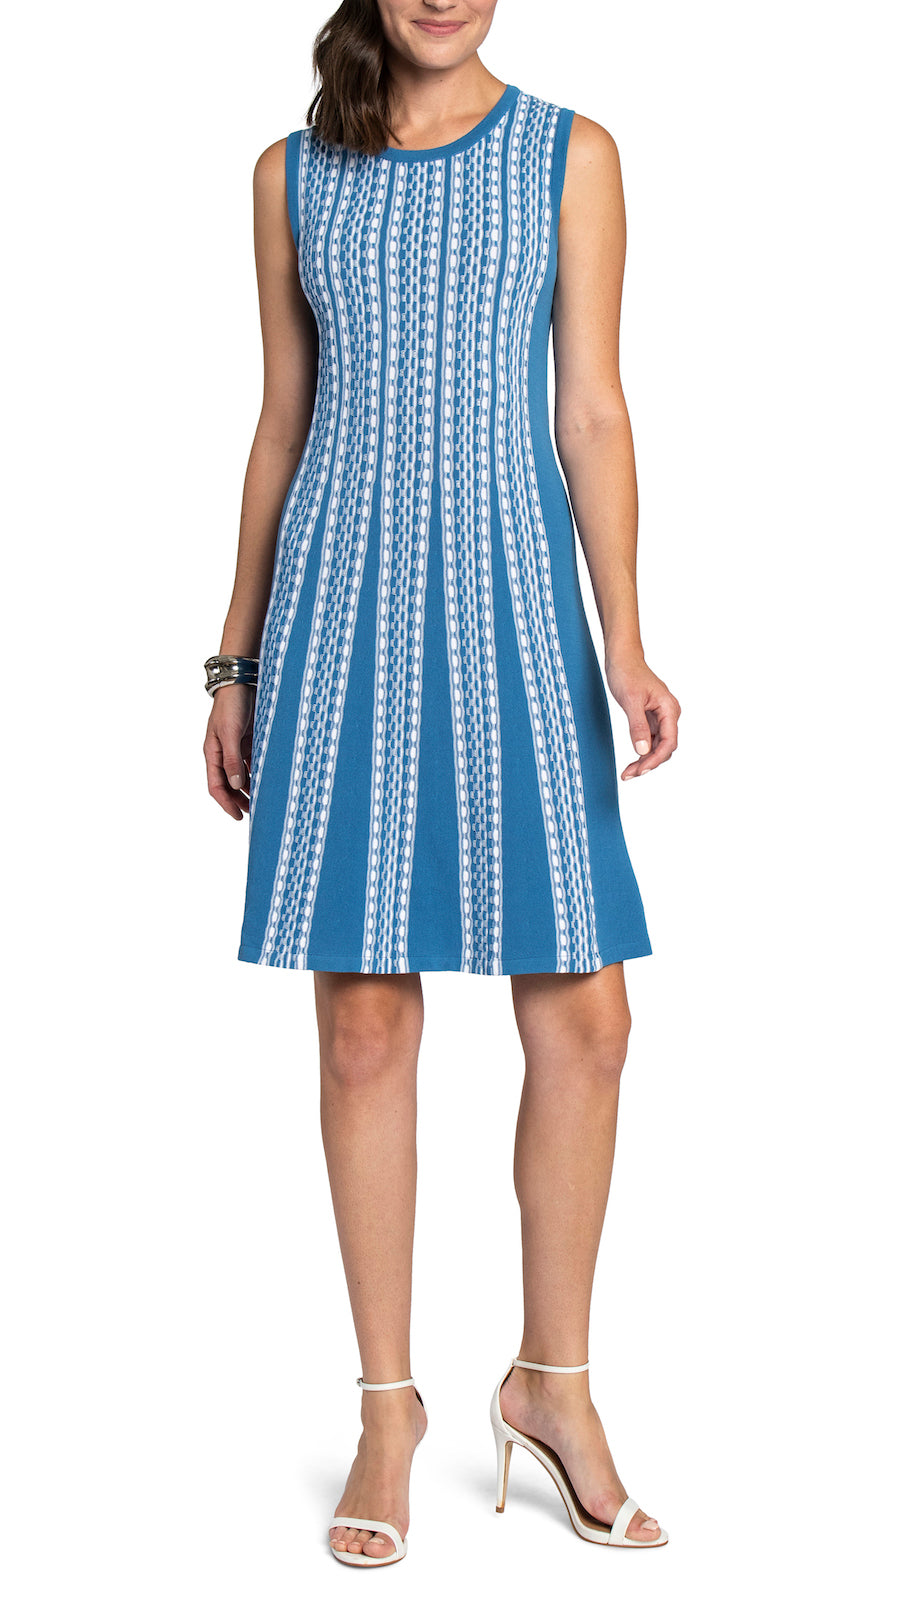 CONTEMPO Thyra Fit and Flare Knitted Dress, Sky Blue/White